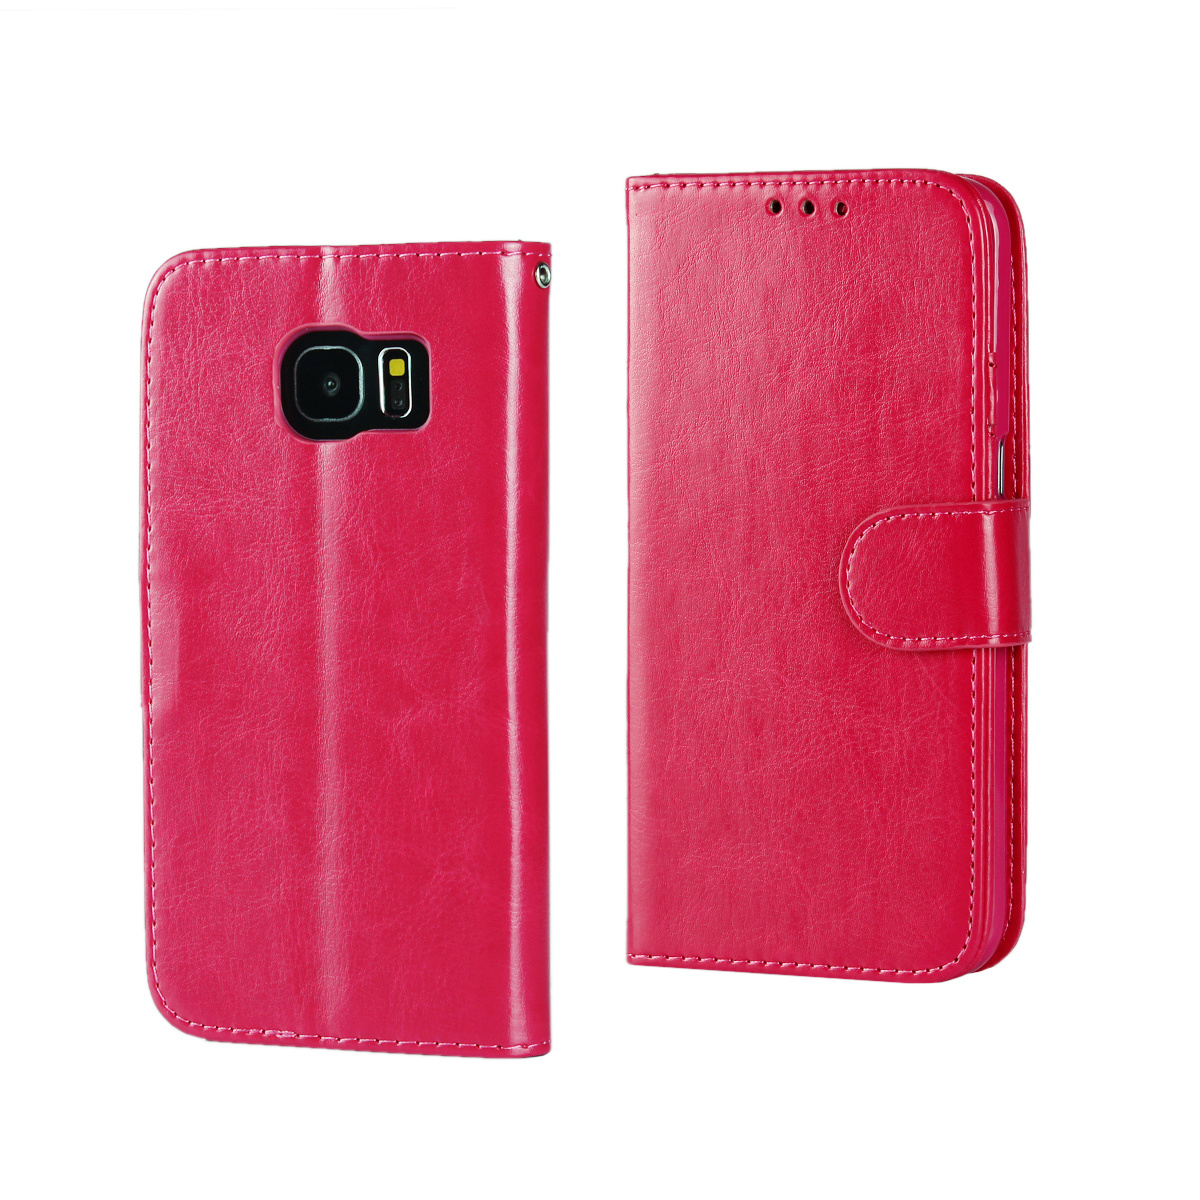 Http List Item Best Selling Sport Stereo Goospery Samsung Note 9 N960 Pearl Jelly Case Gold 569078152 02g 0 W St G